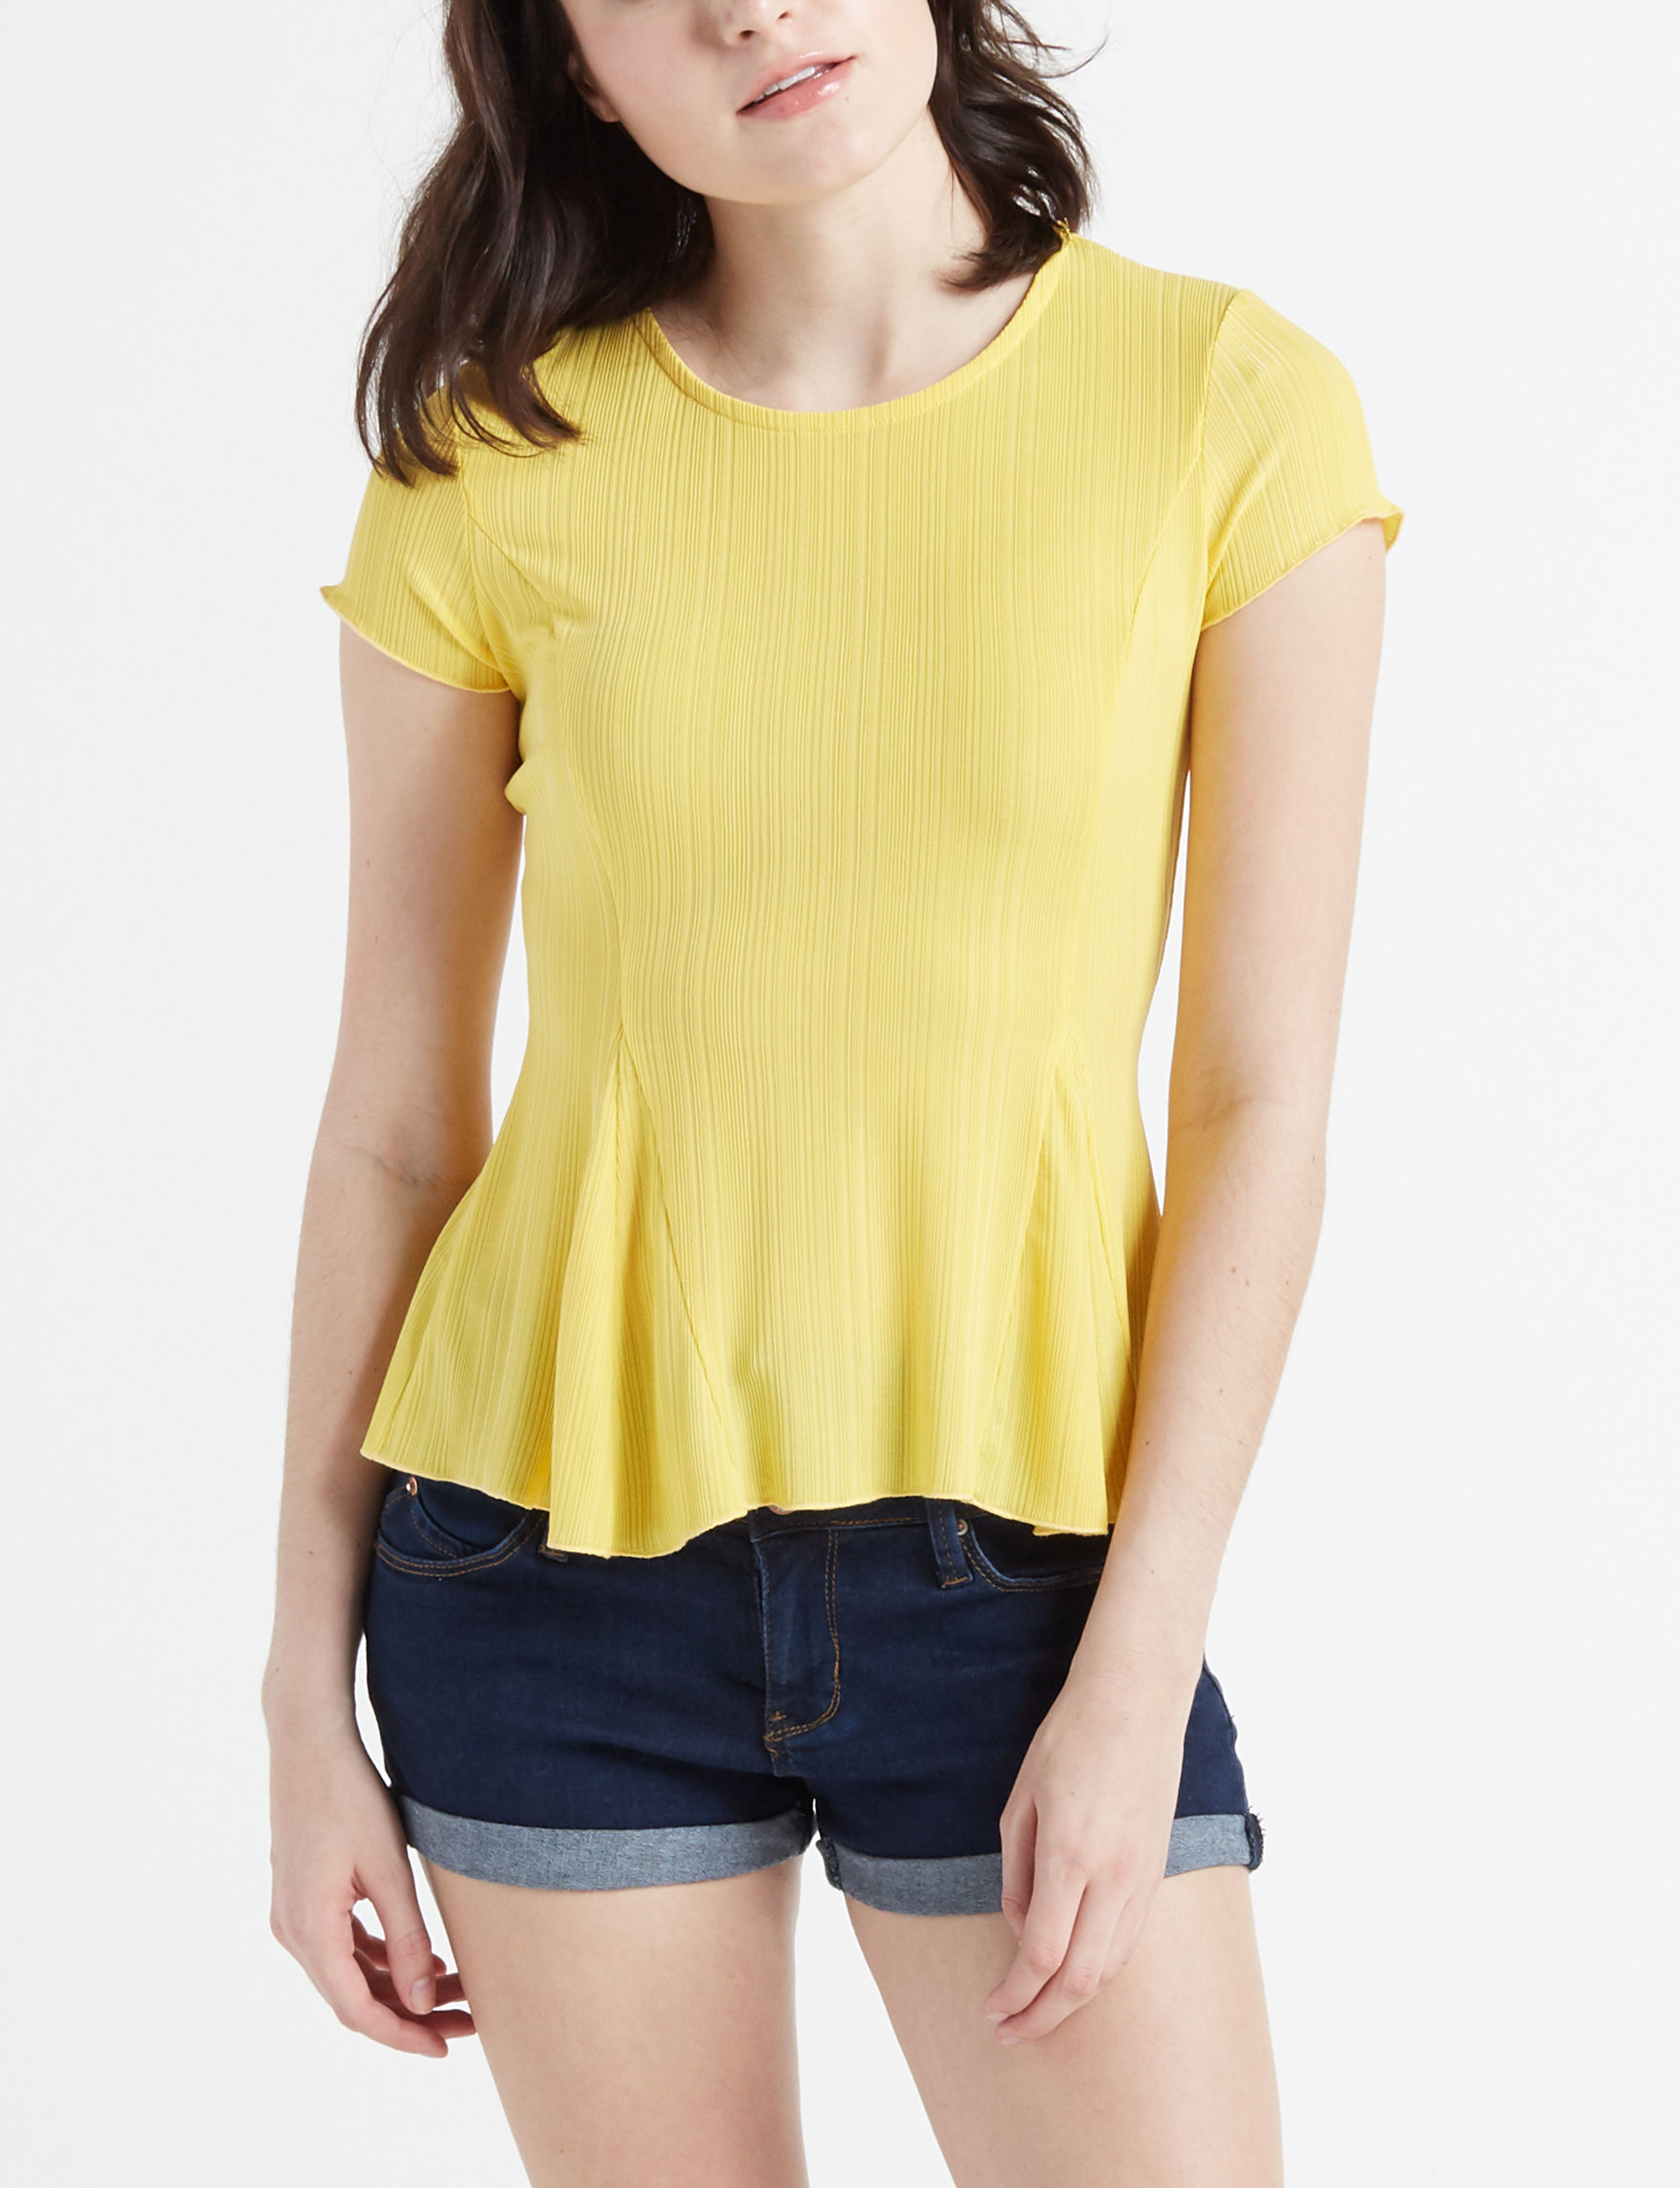 Charmed Hearts Yellow Shirts & Blouses